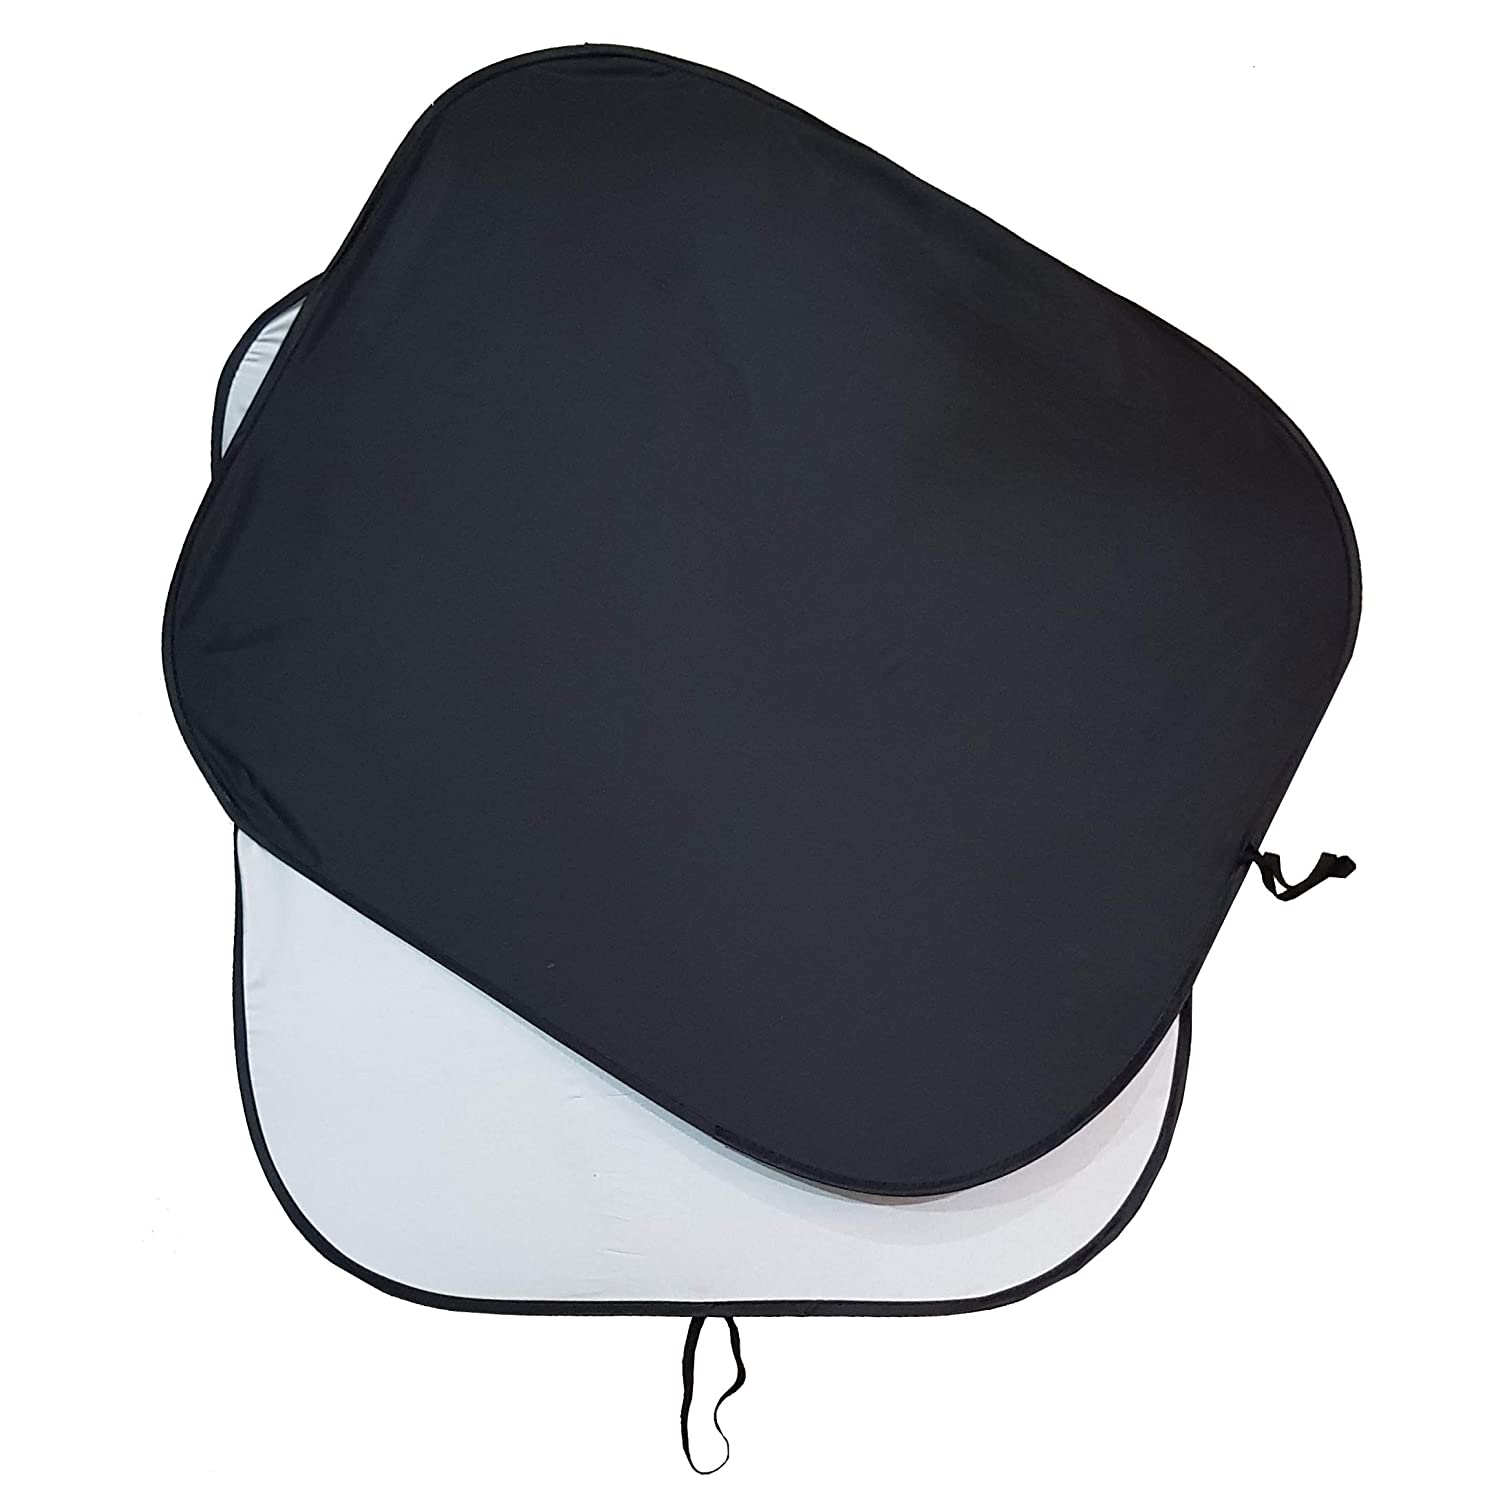 210T Fabric in The Market for Maximum UV and Sun Protection Foldable Sunshade for car Windshield Will Keep Your car Cooler- Windshield Sunshade Windshield Sun Shade Large